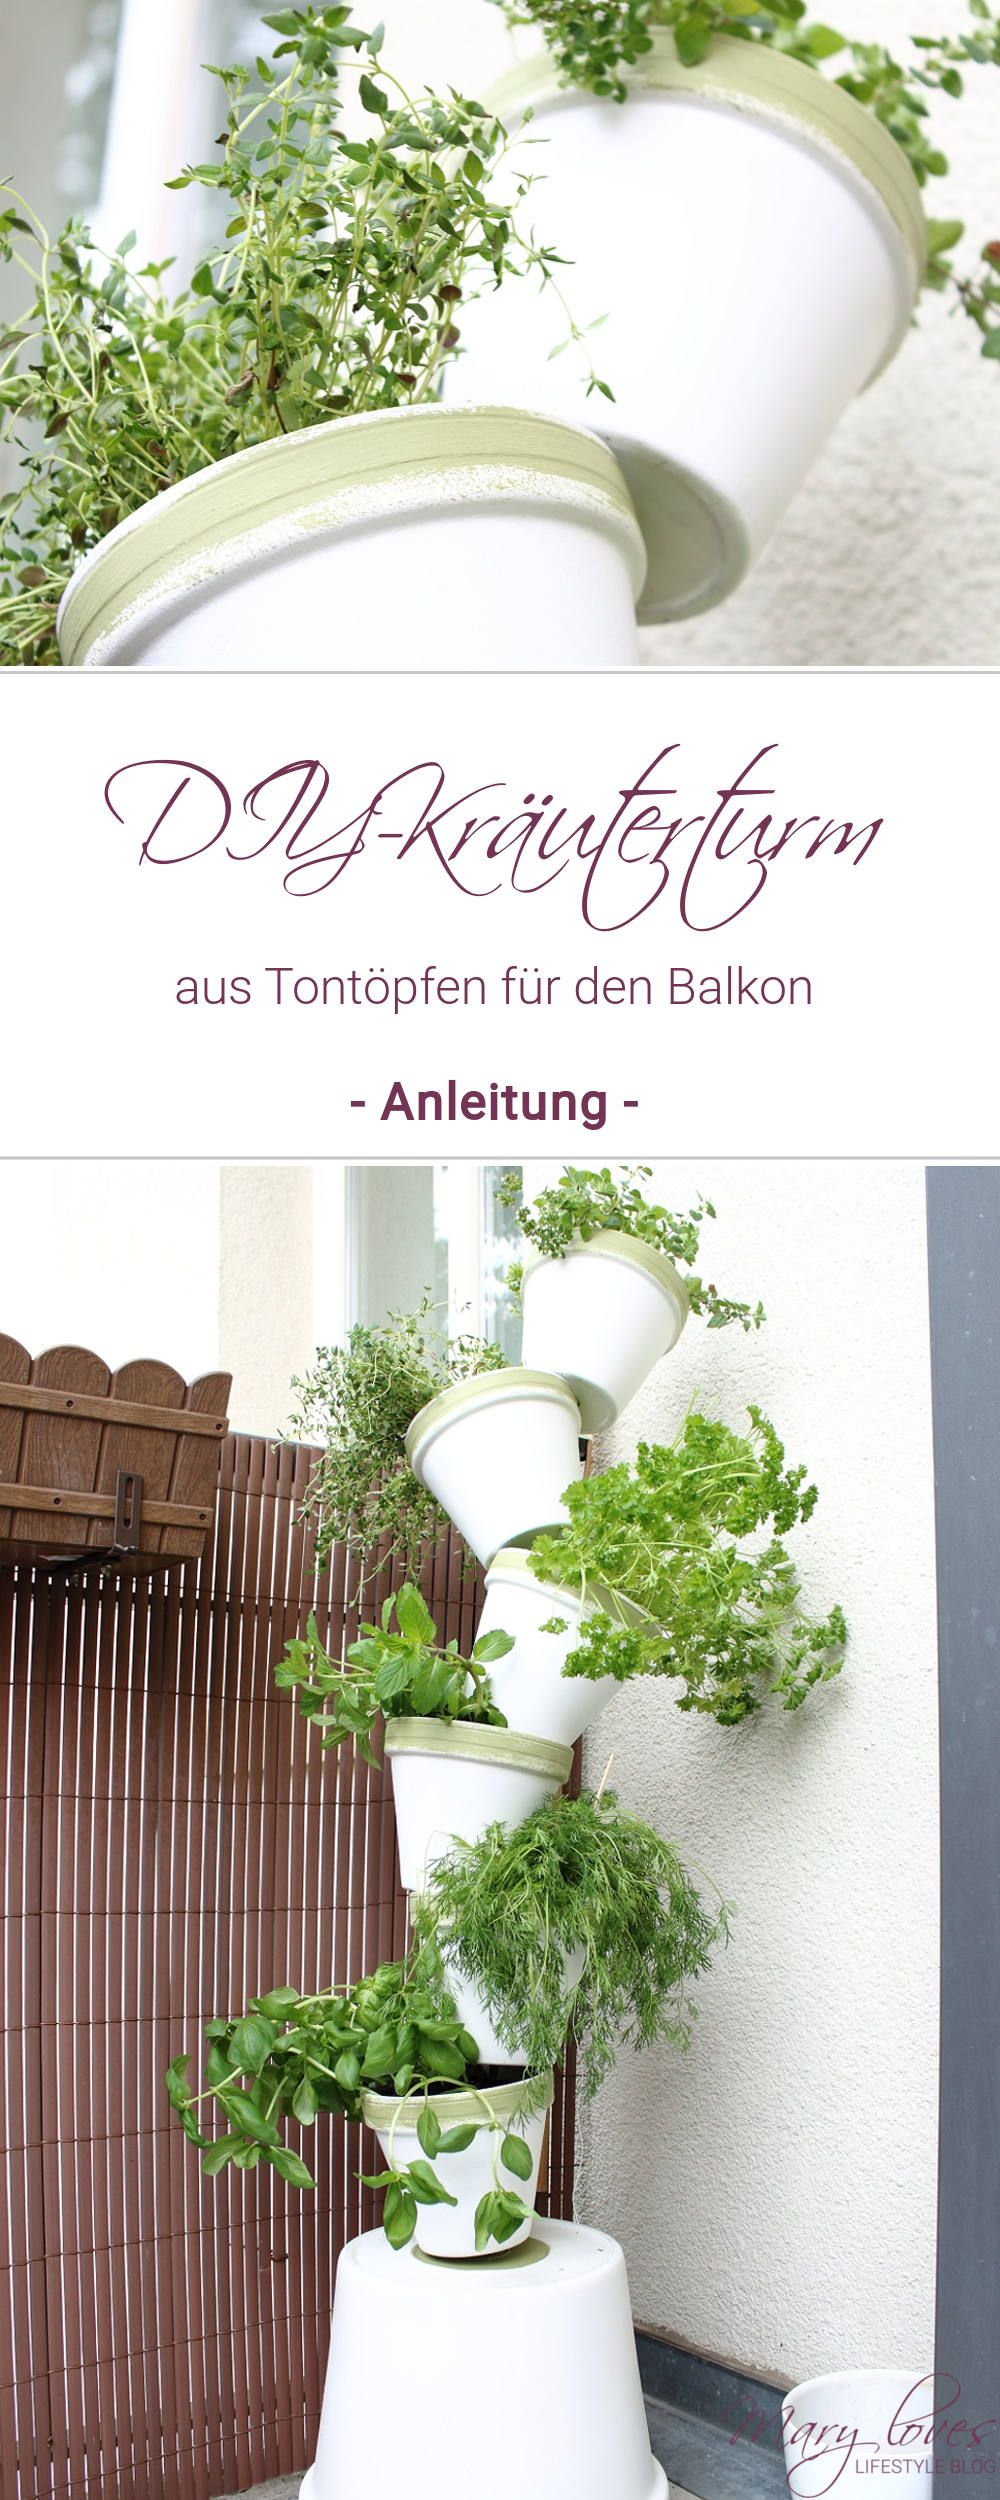 diy kr uterturm aus tont pfen f r den balkon garten pinterest balkon garten und kraut. Black Bedroom Furniture Sets. Home Design Ideas